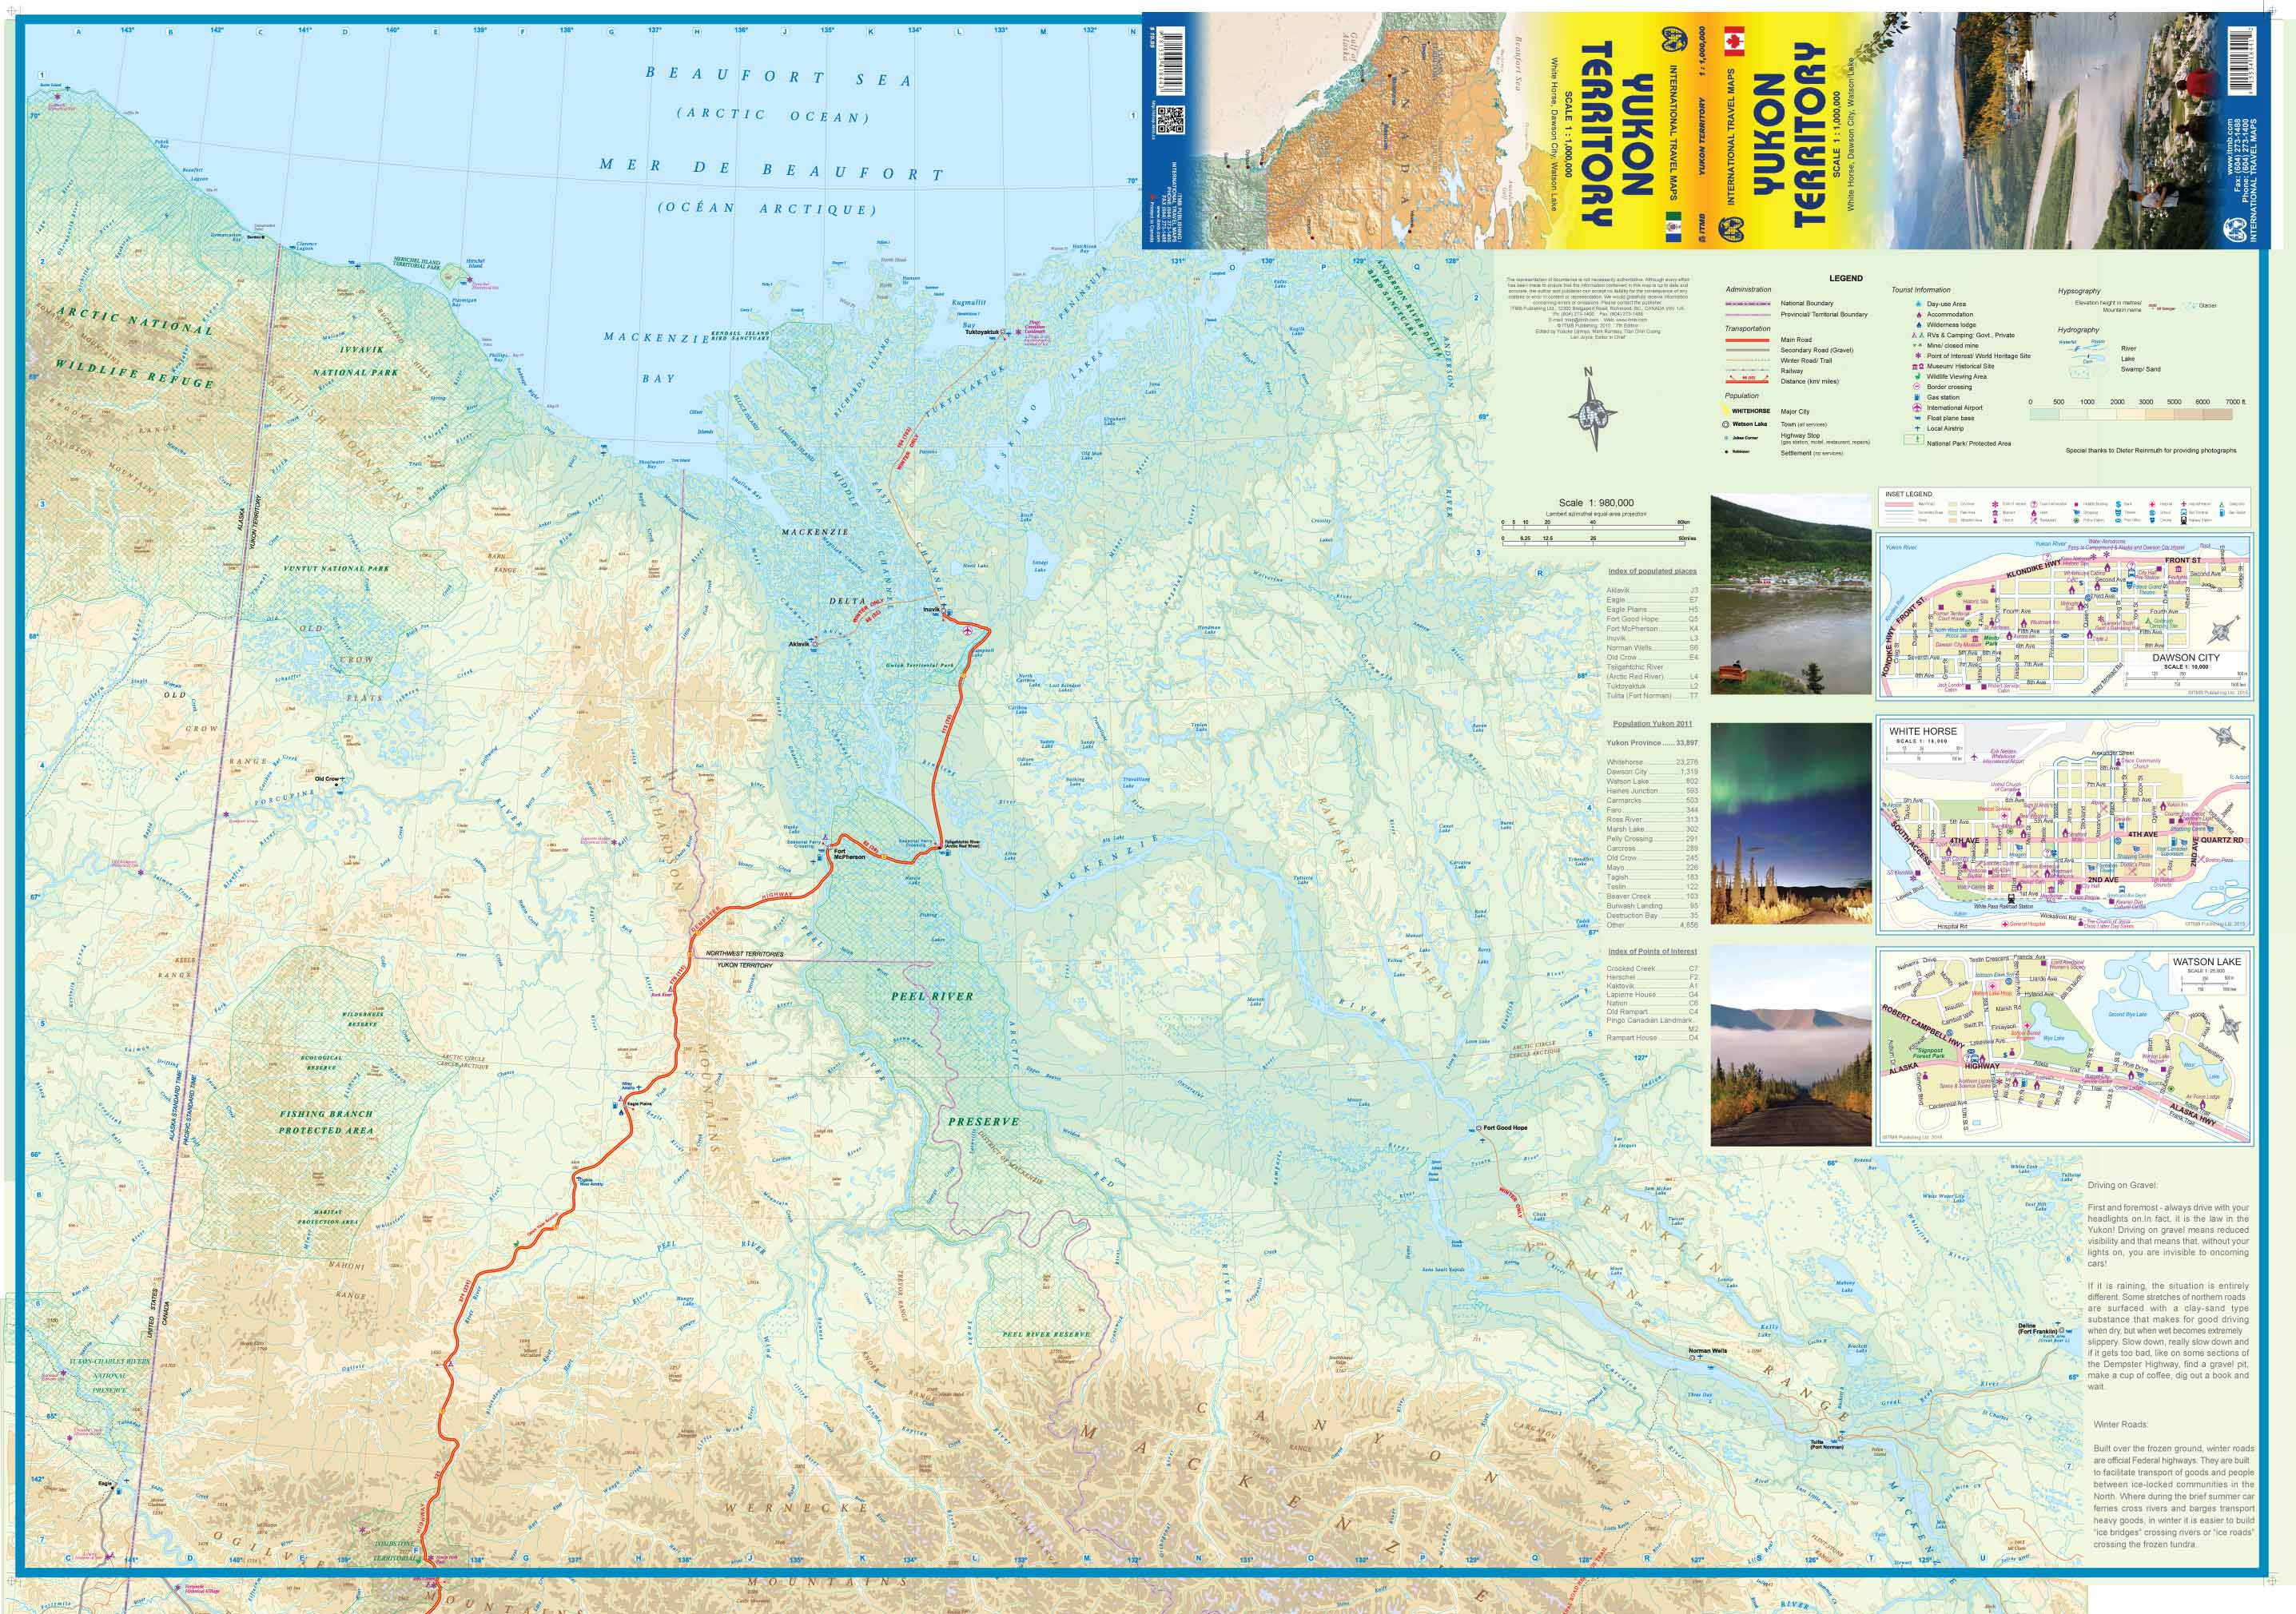 Maps For Travel City Maps Road Maps Guides Globes Topographic - Yukon map